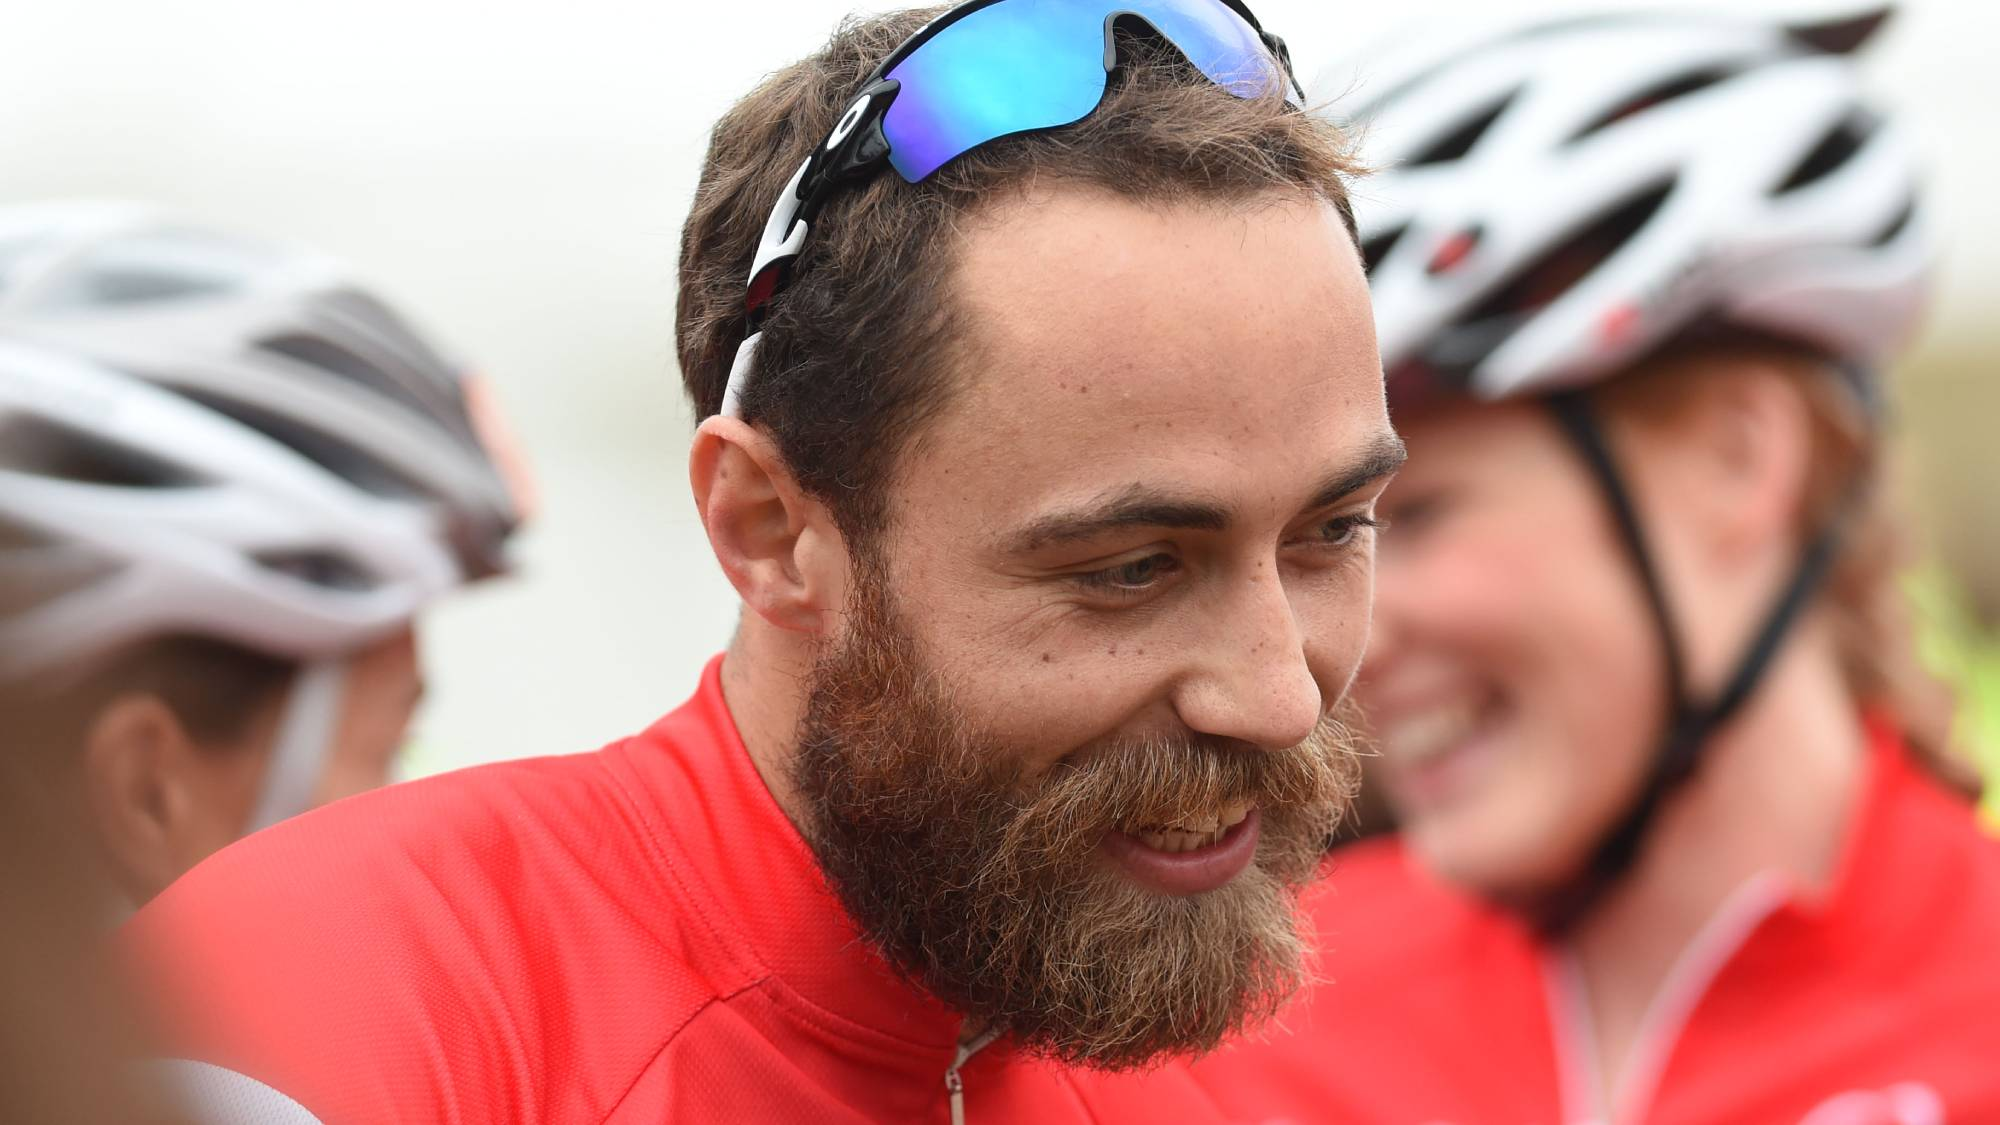 James Middleton opens up about asking for help with depression